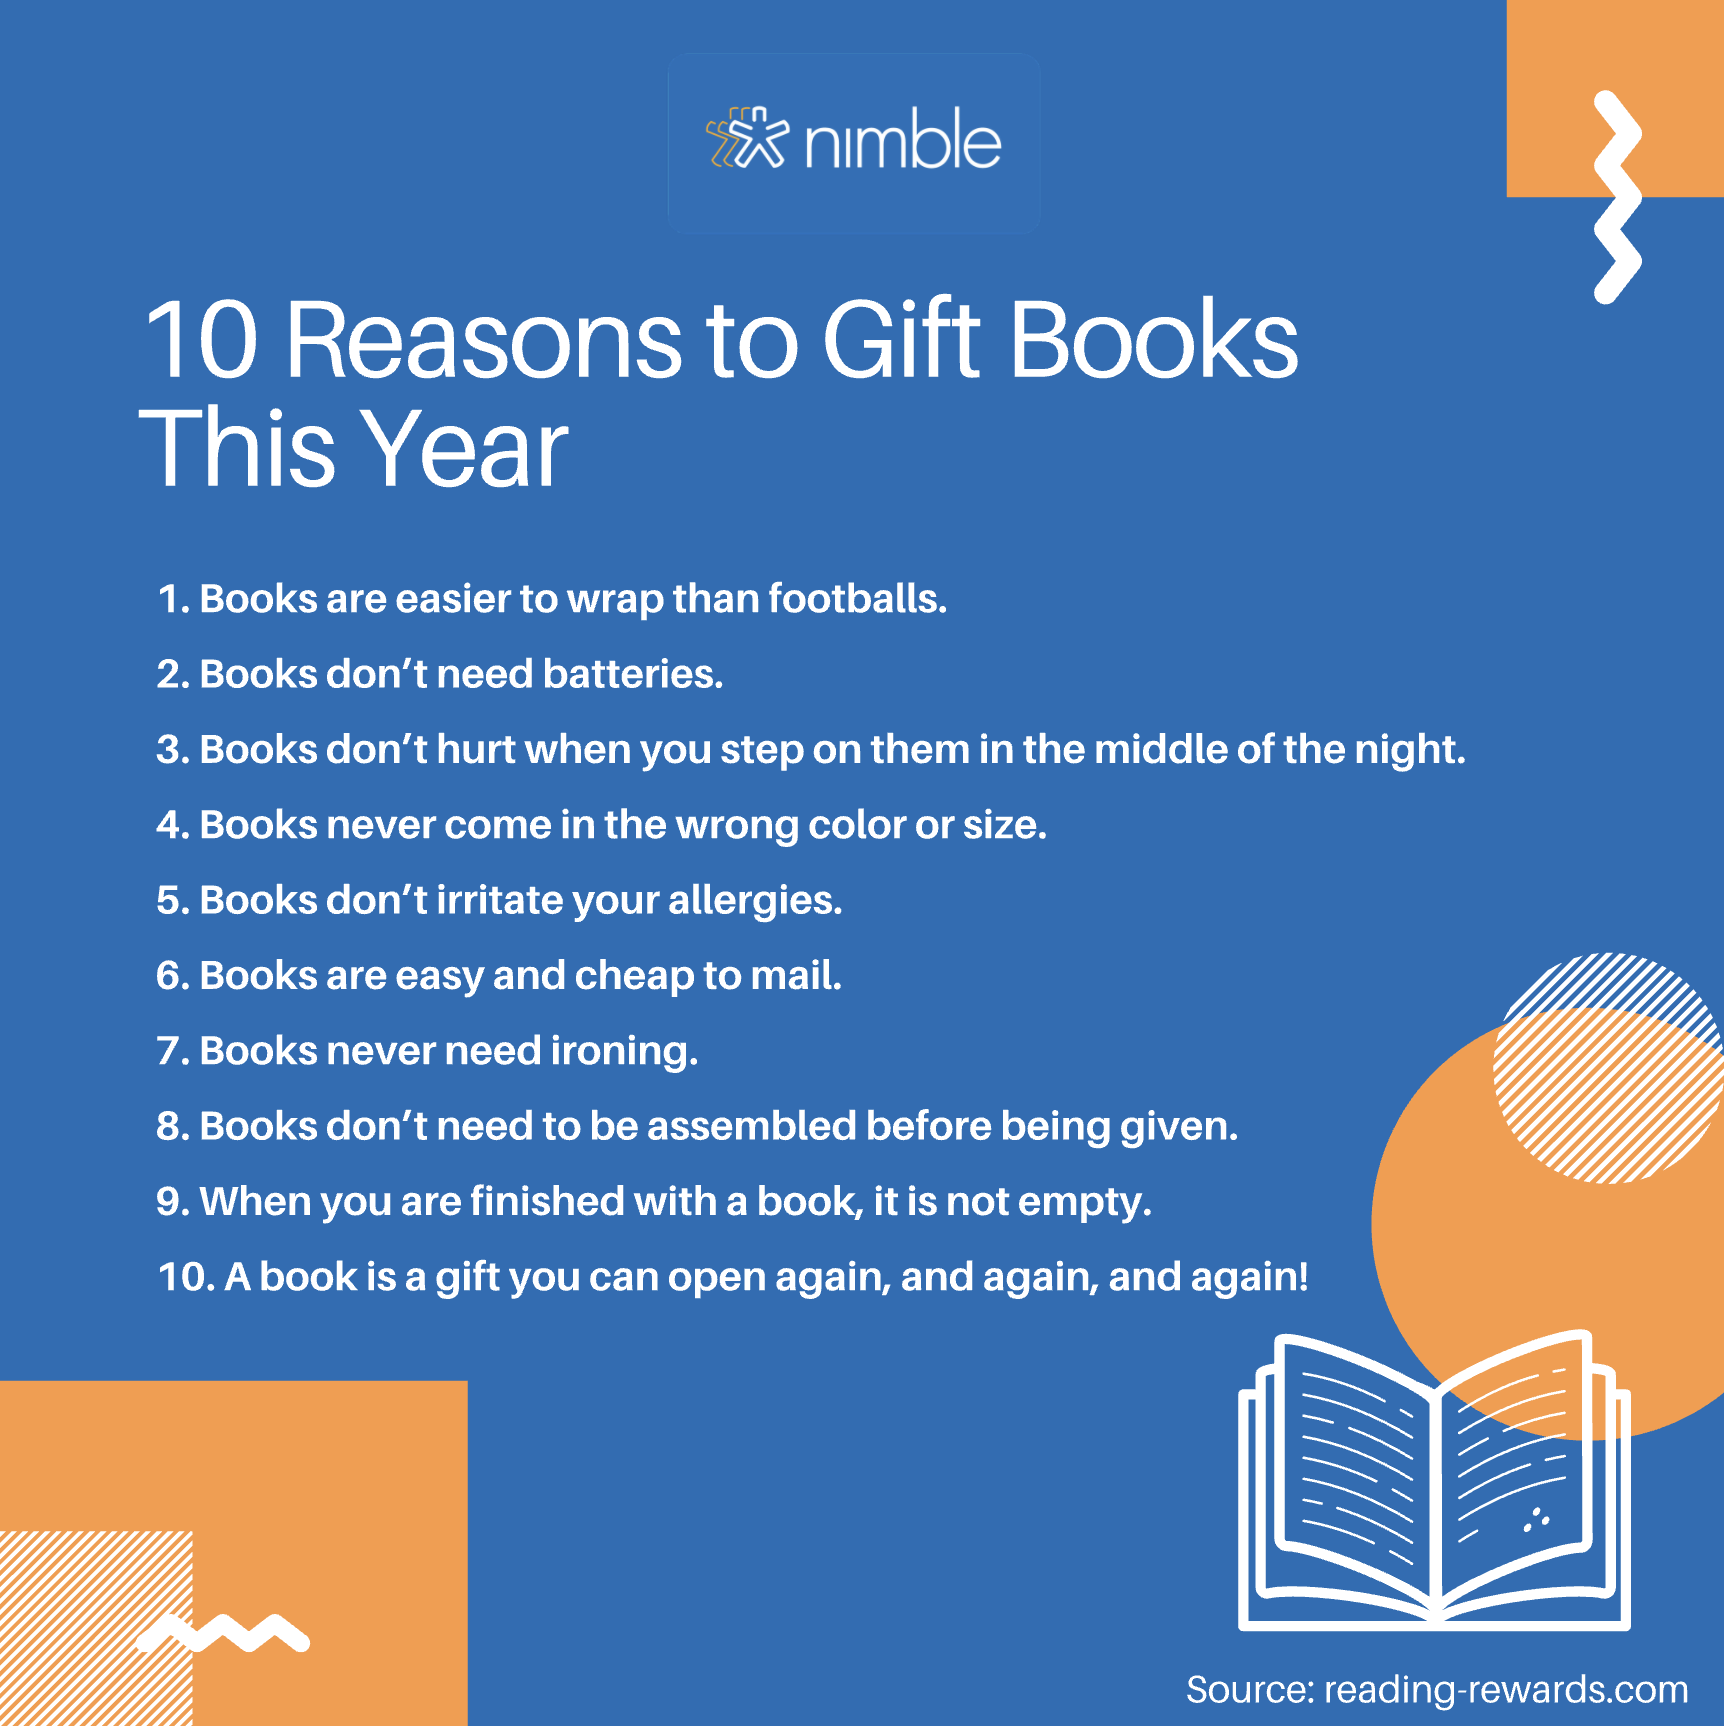 10 reasons to gift books in 2020